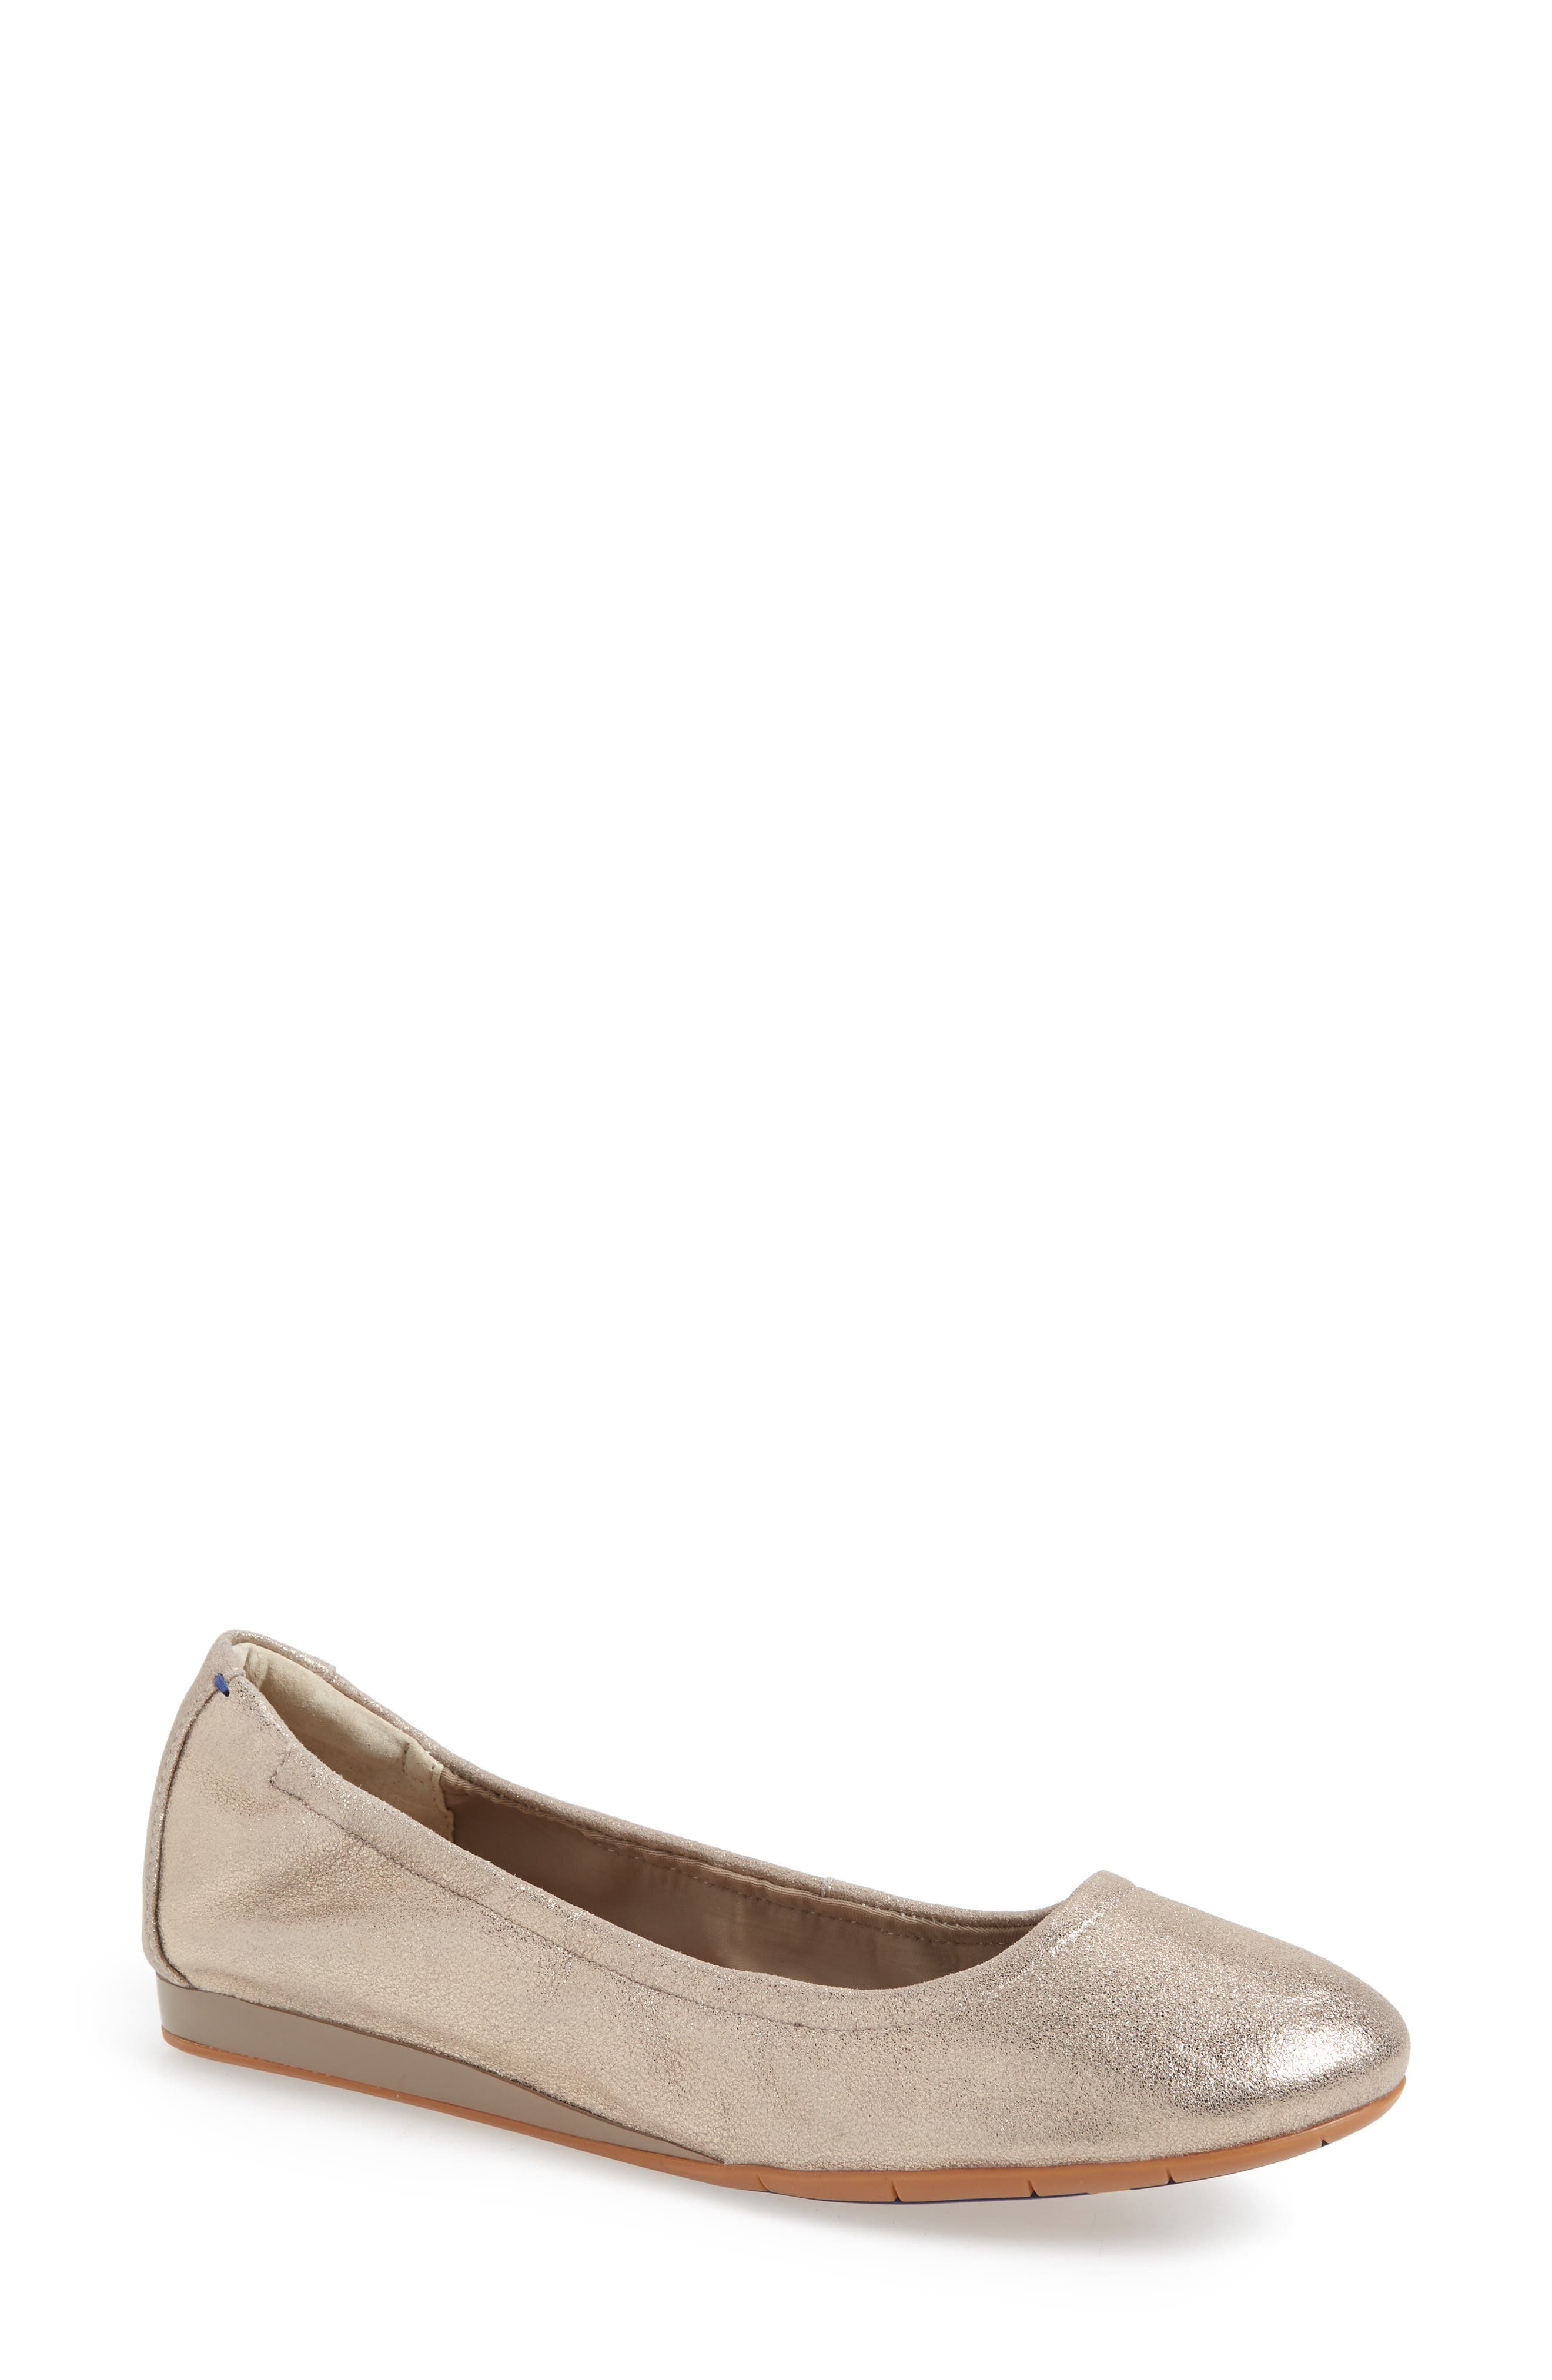 Helena Flat,                         Main,                         color, TAUPE NUBUCK LEATHER